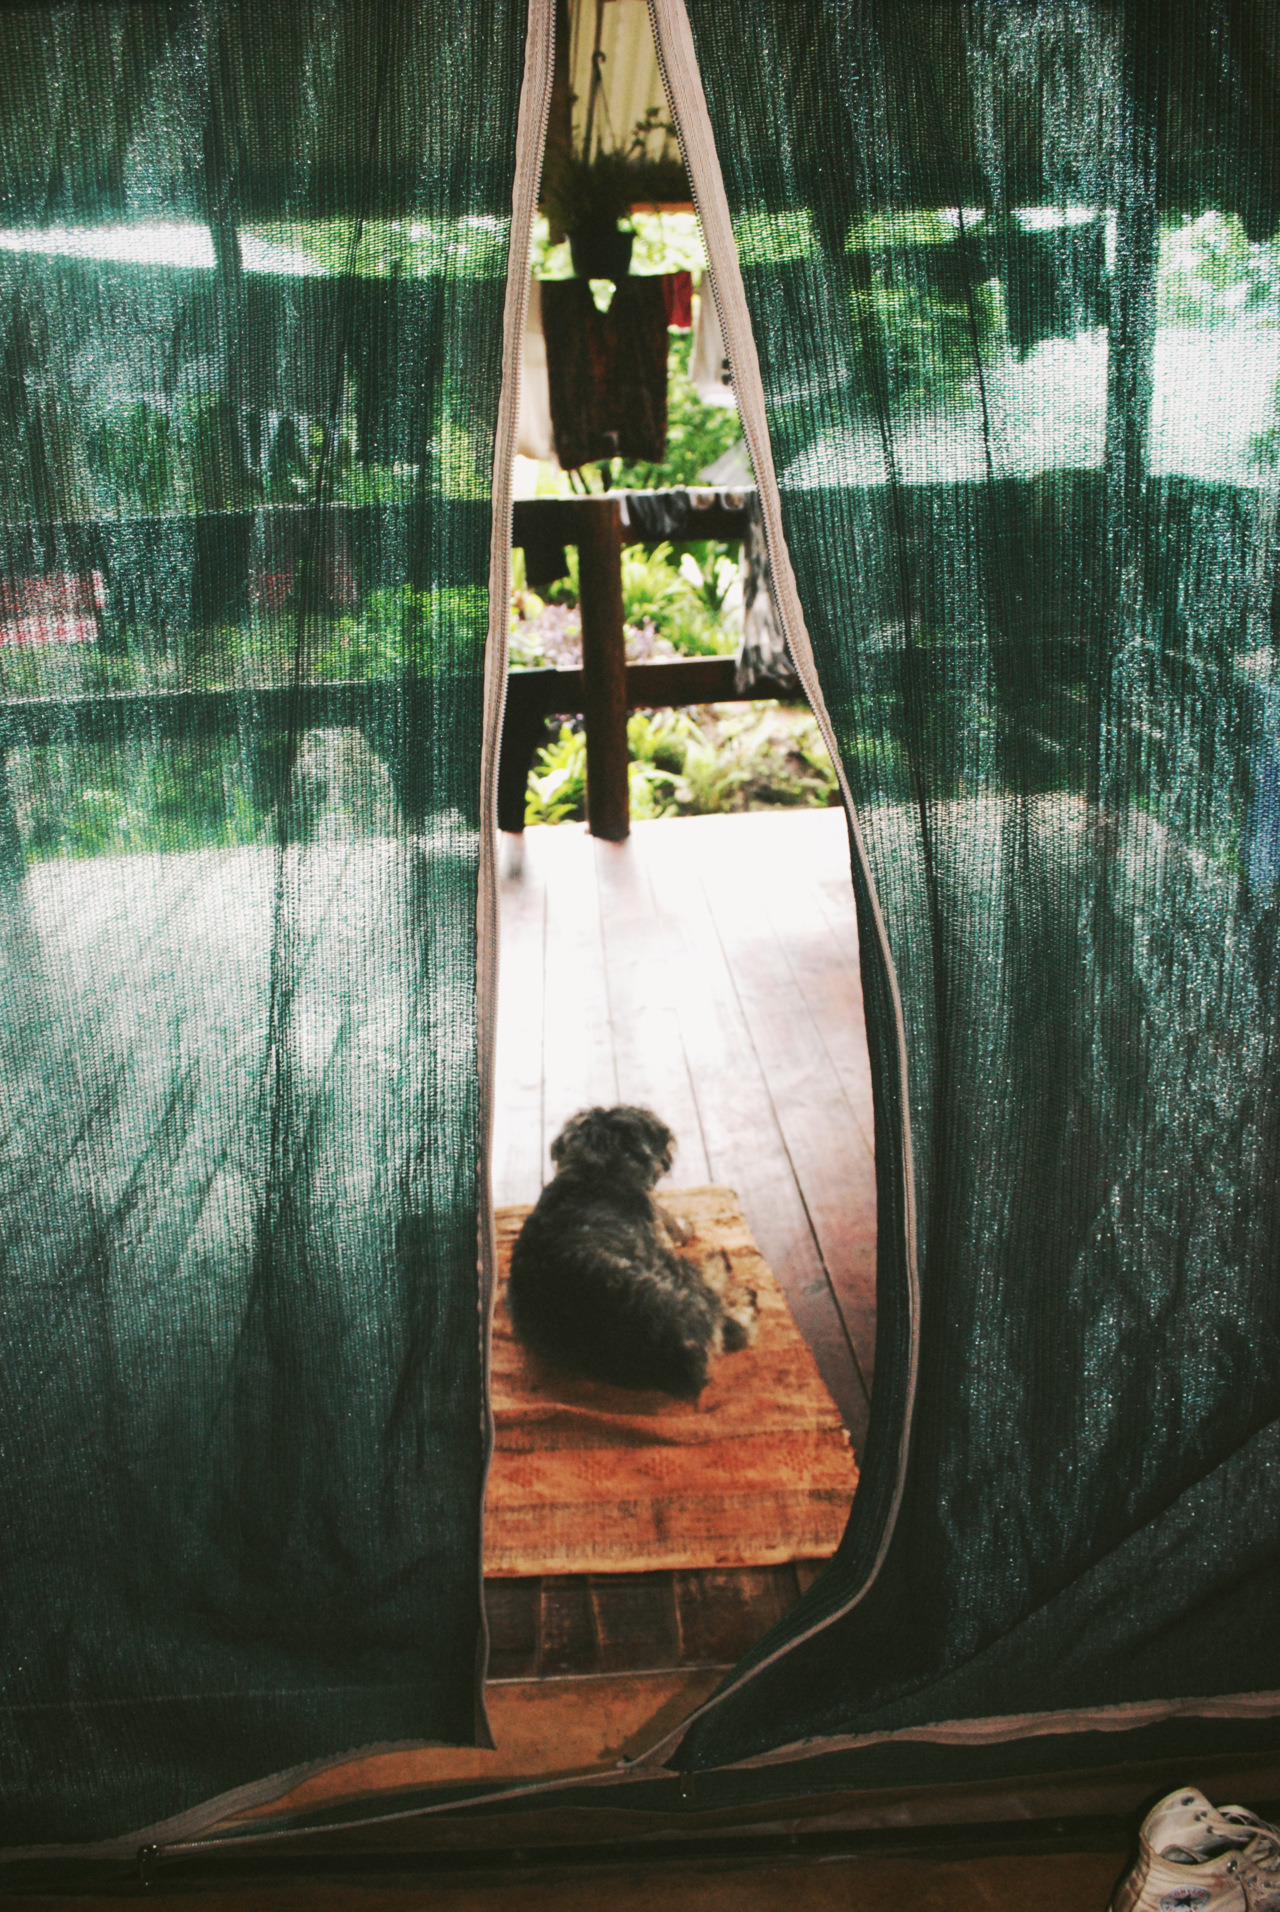 Hostel in Swaziland, we stayed in a tent guarded by the cutest dog!